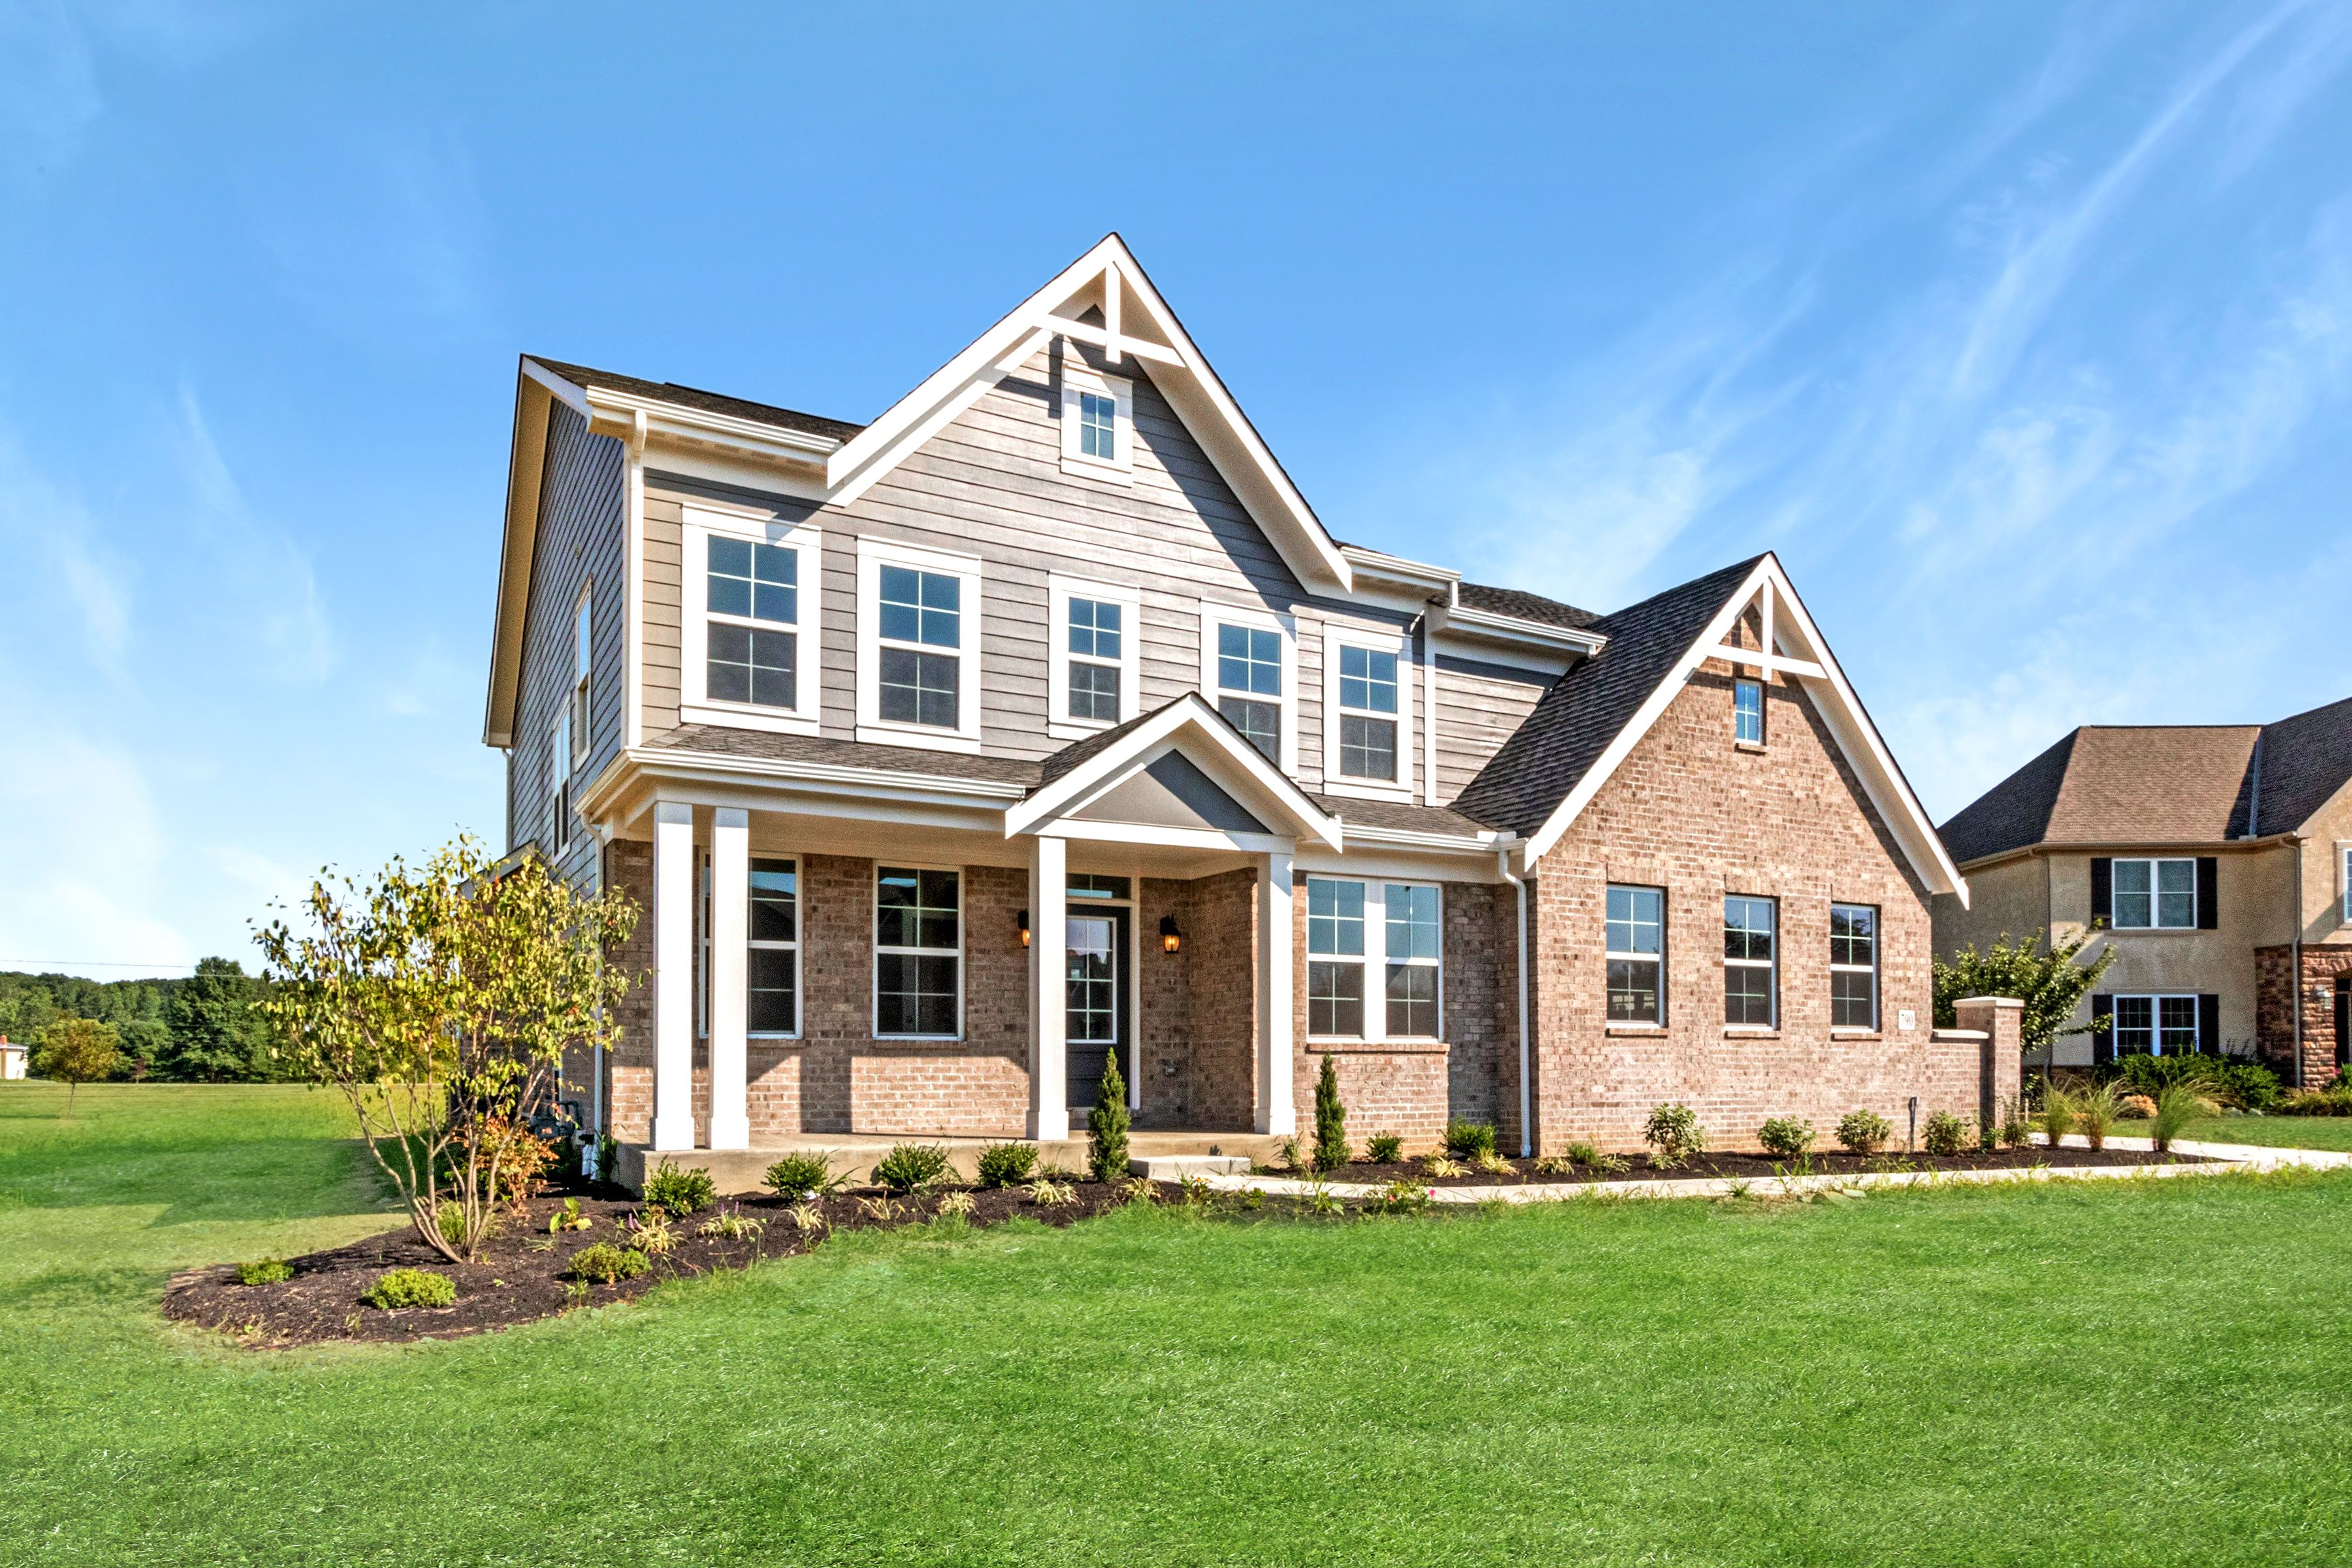 'Reserve at Meadowood' by Fischer Homes  in Cincinnati